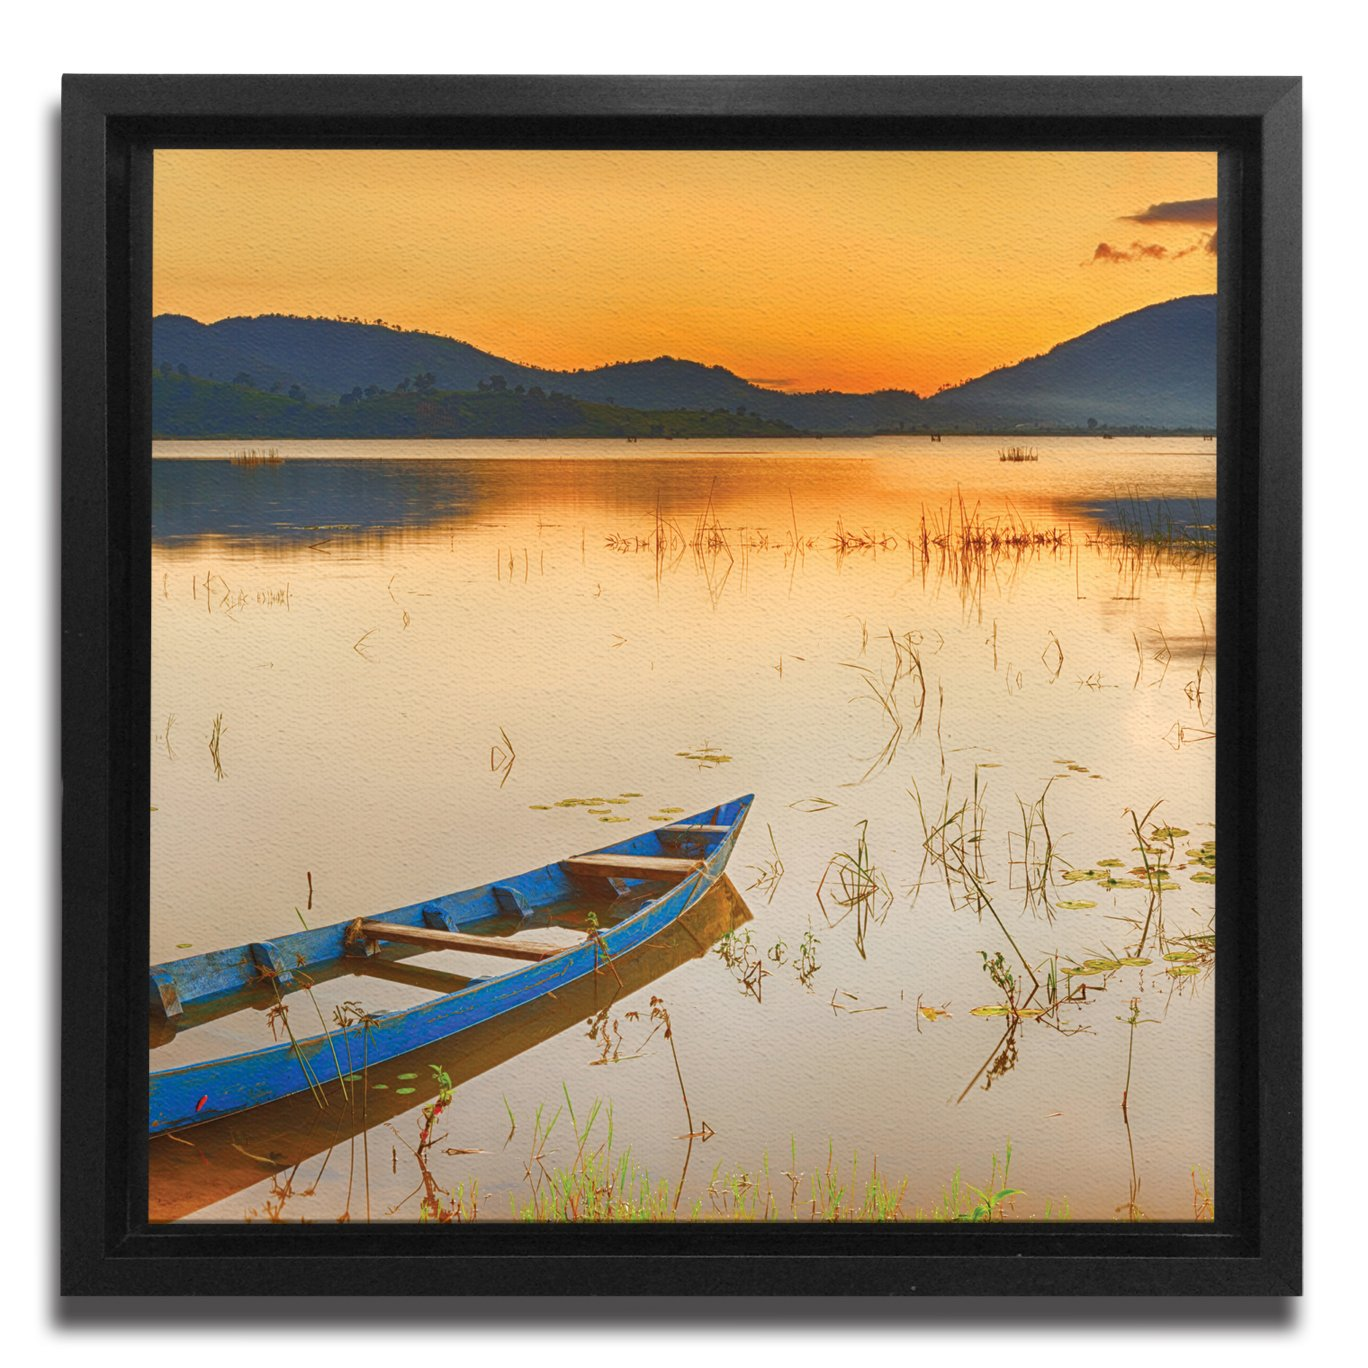 JP London Ready to Hang Made in North America Framed 1.5in Thick Gallery Wrap Canvas Wall Art Vietnam Long Boat Lake Sunset 18in SQSFCNV2382